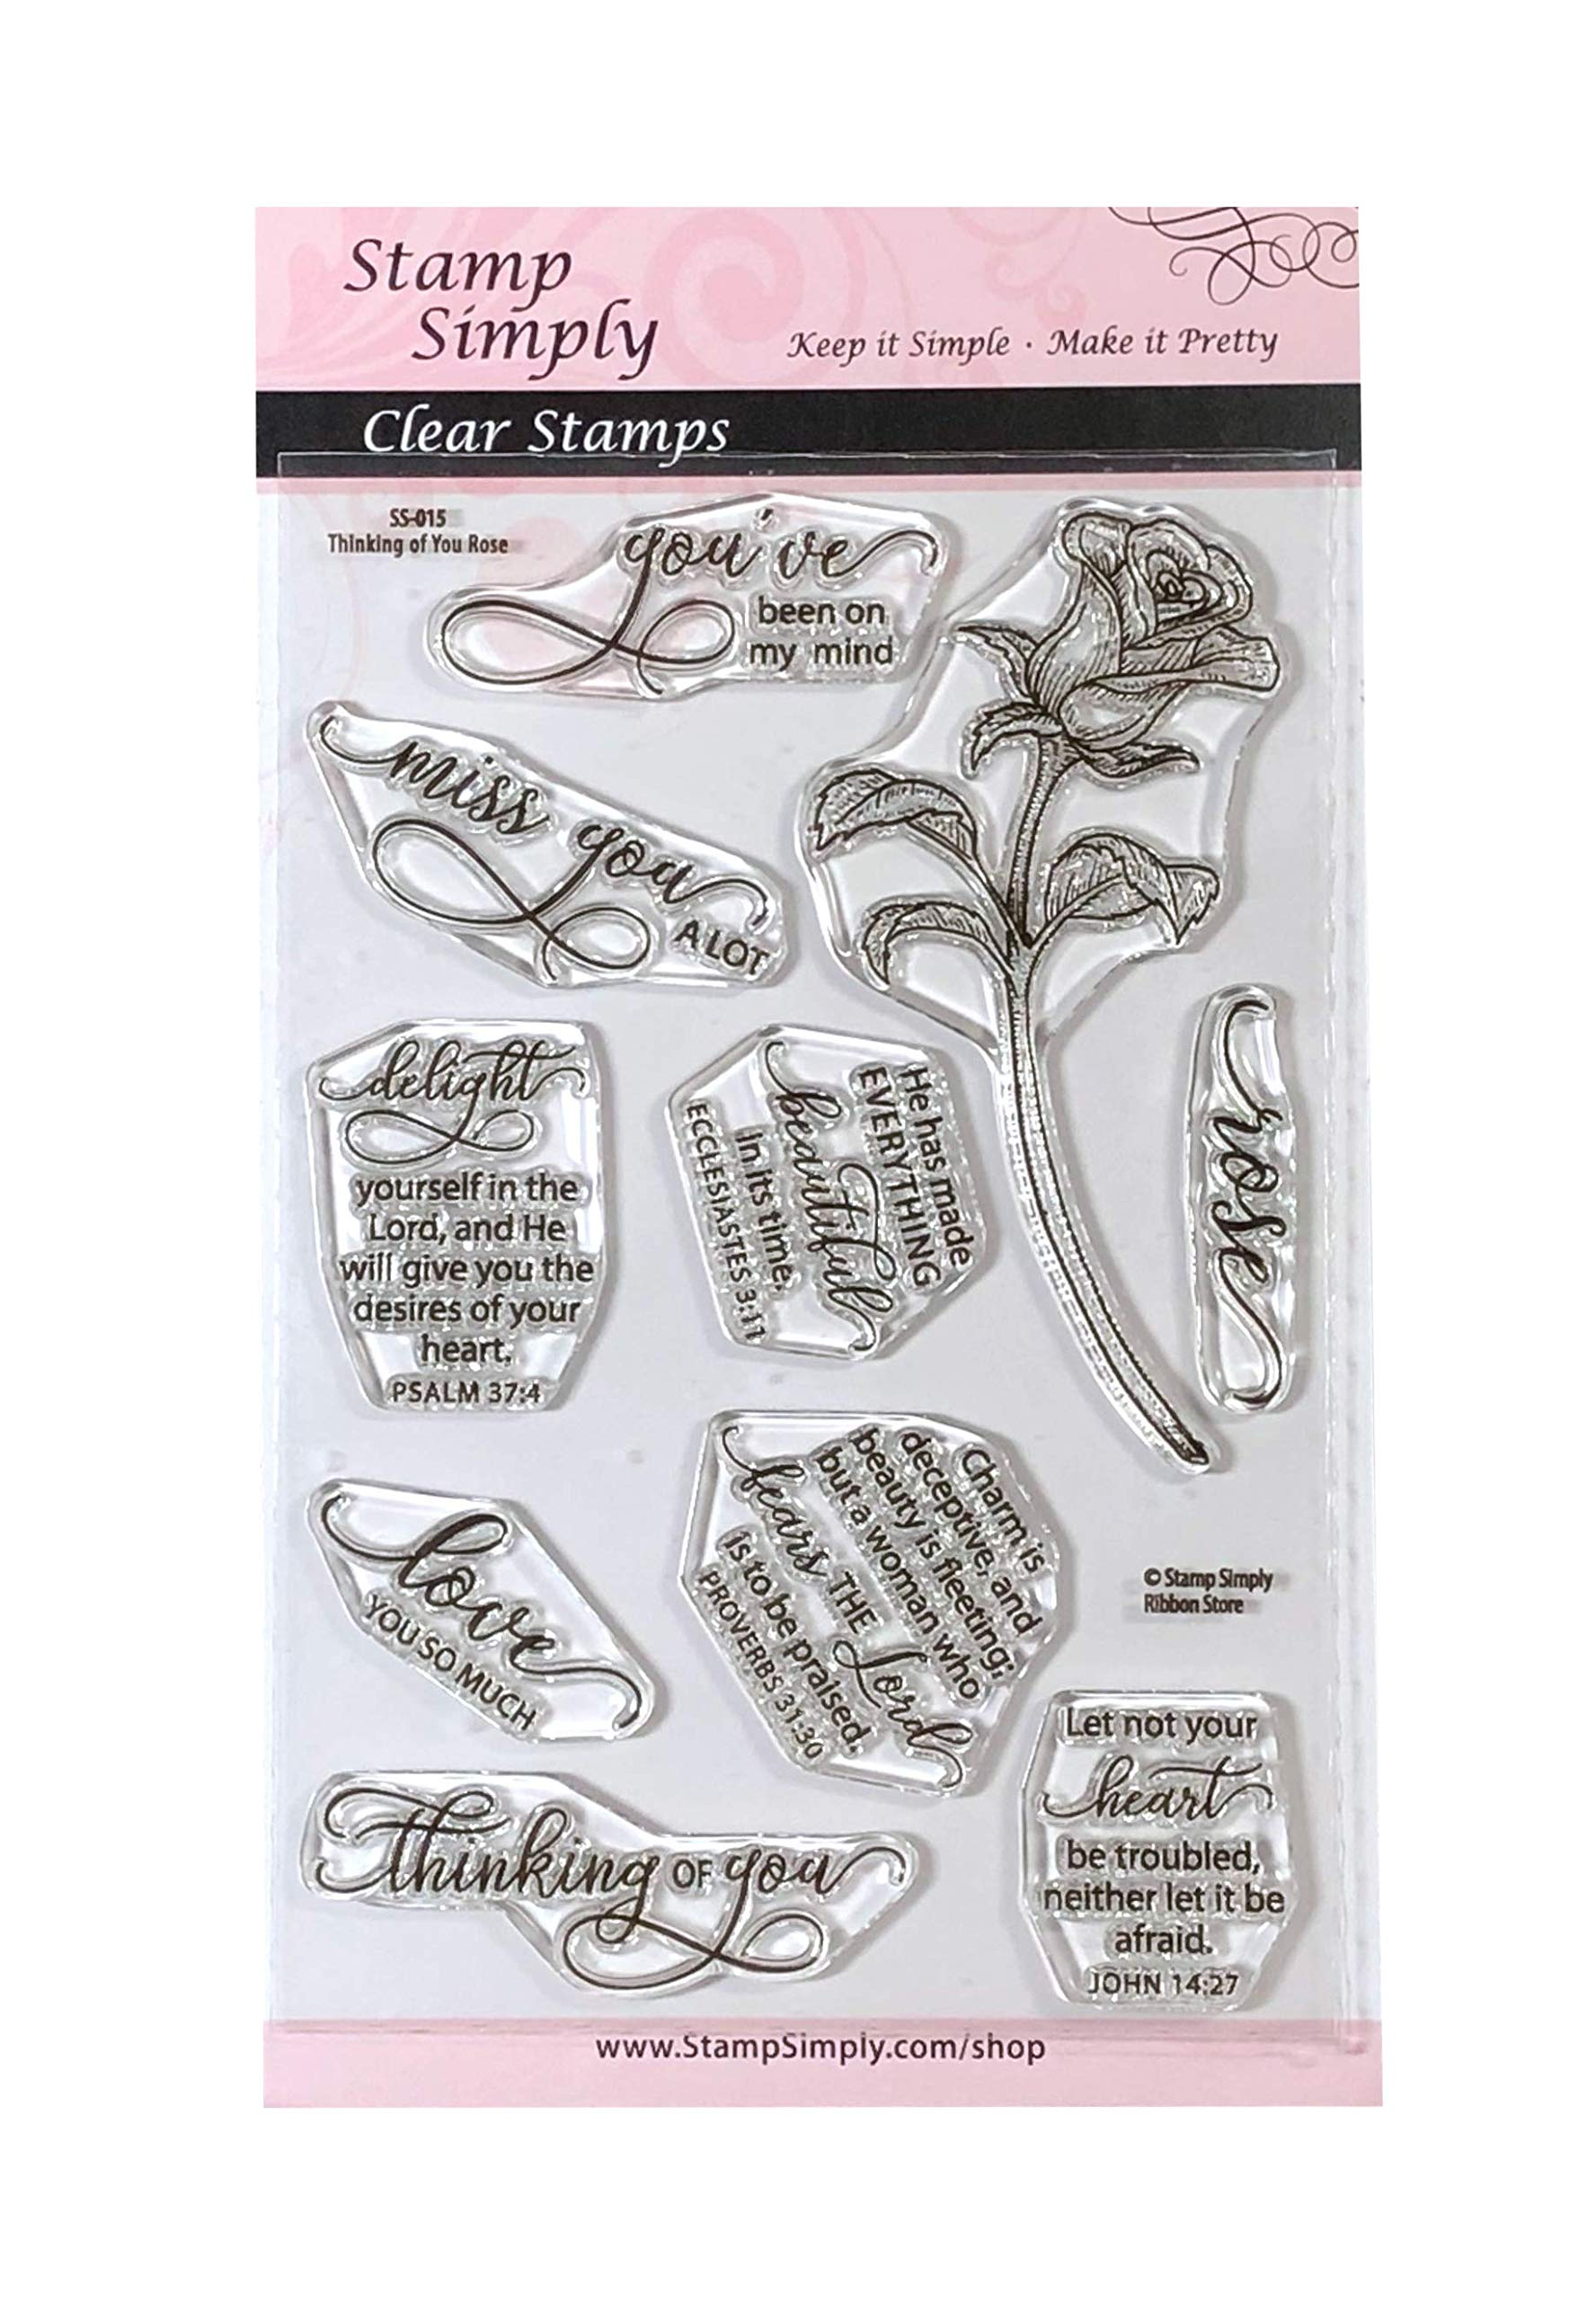 Stamp Simply Clear Stamps Thinking of You Rose Garden Flower Christian Religious 4x6 Inch Sheet - 10 Pieces